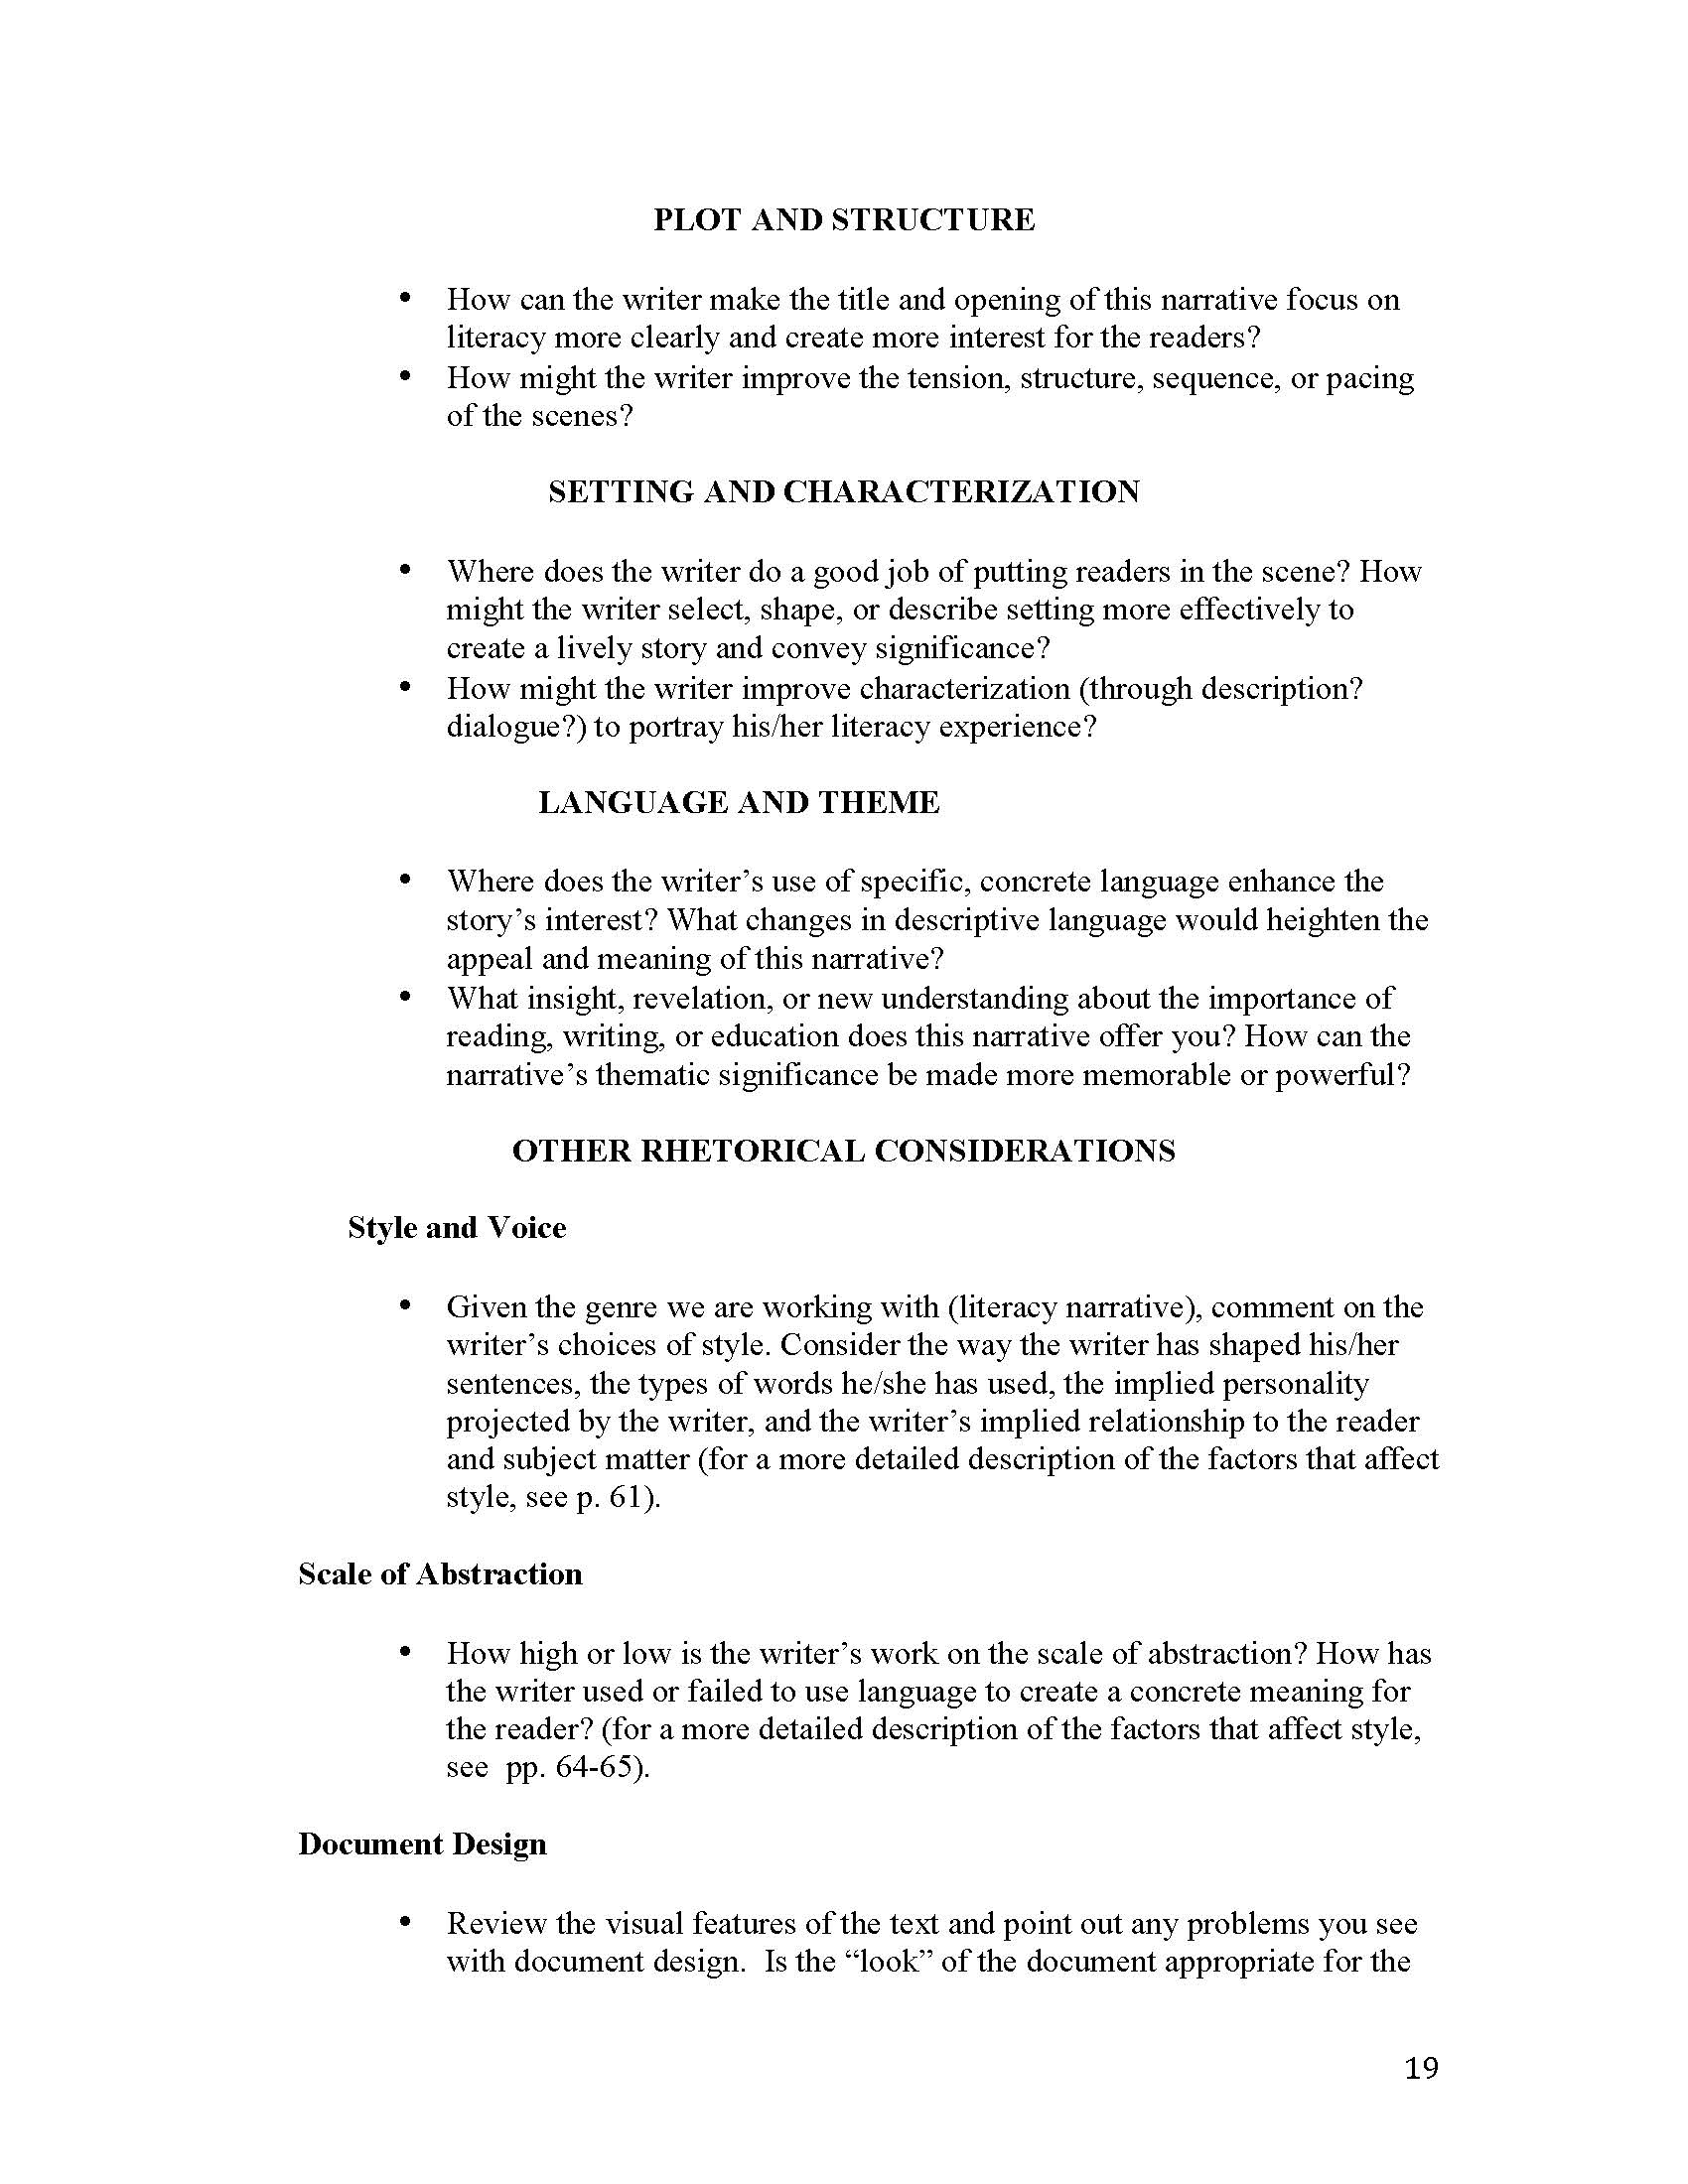 007 Essay Example Unit 1 Literacy Narrative Instructor Copy Page 19 Immigration Marvelous Introduction Reform Full